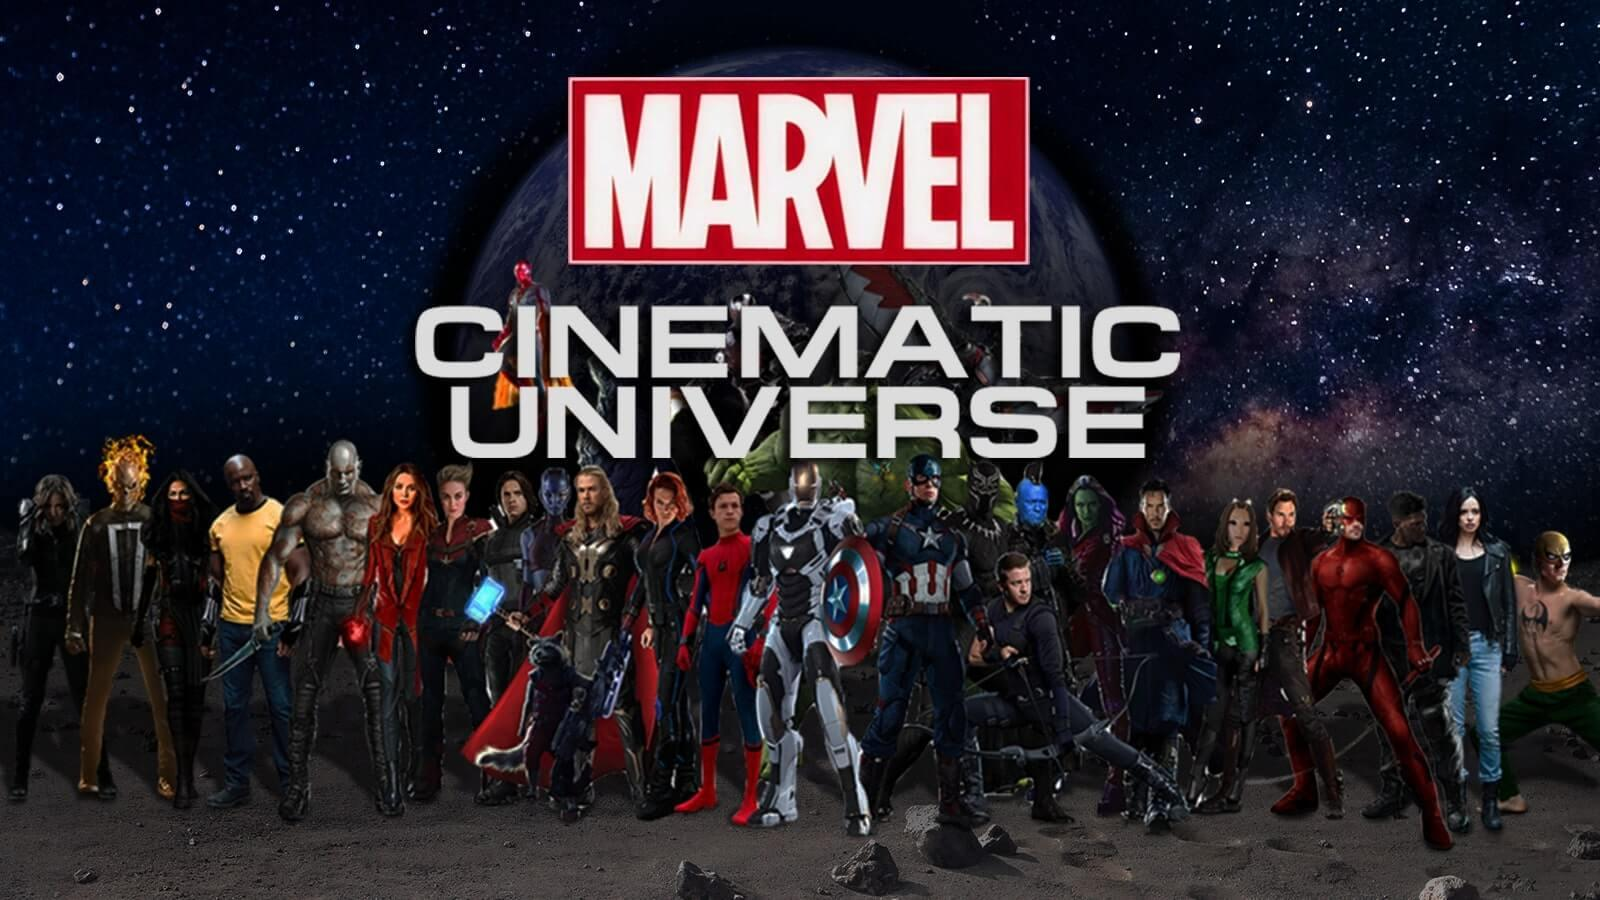 Over 150 Grads Credited Throughout Marvel Cinematic Universe - Hero image